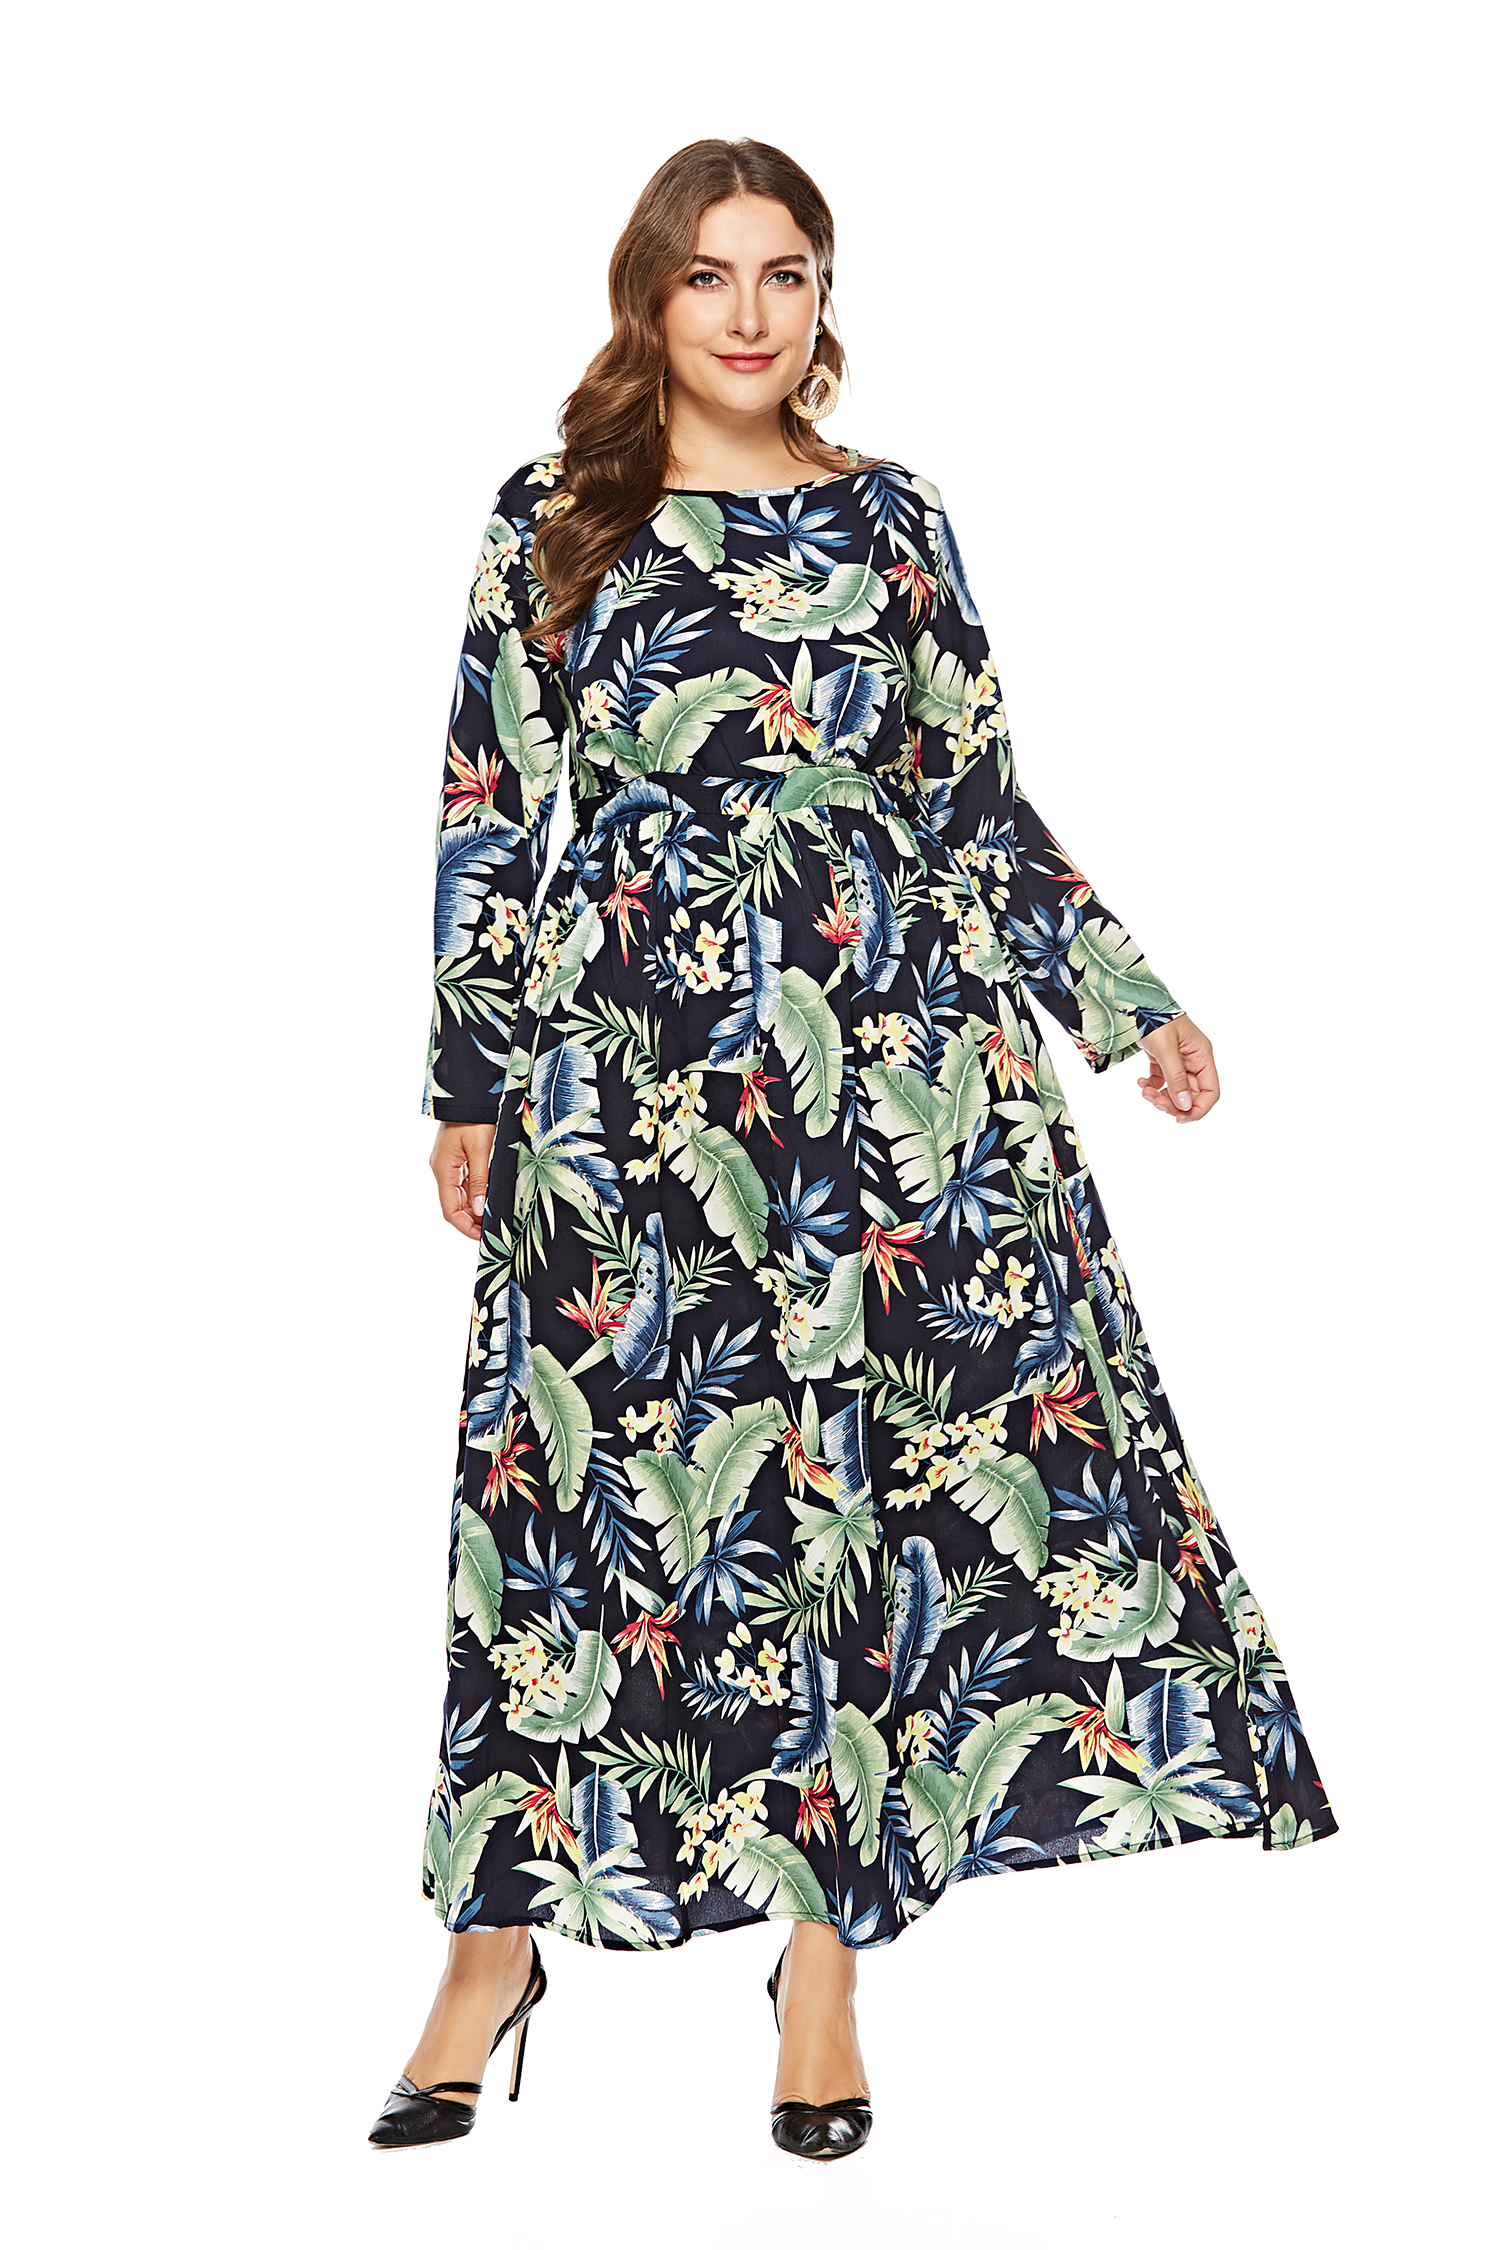 US$ 13.99 - Plus Size Long Sleeve Floral Maxi Dress - www.global ...